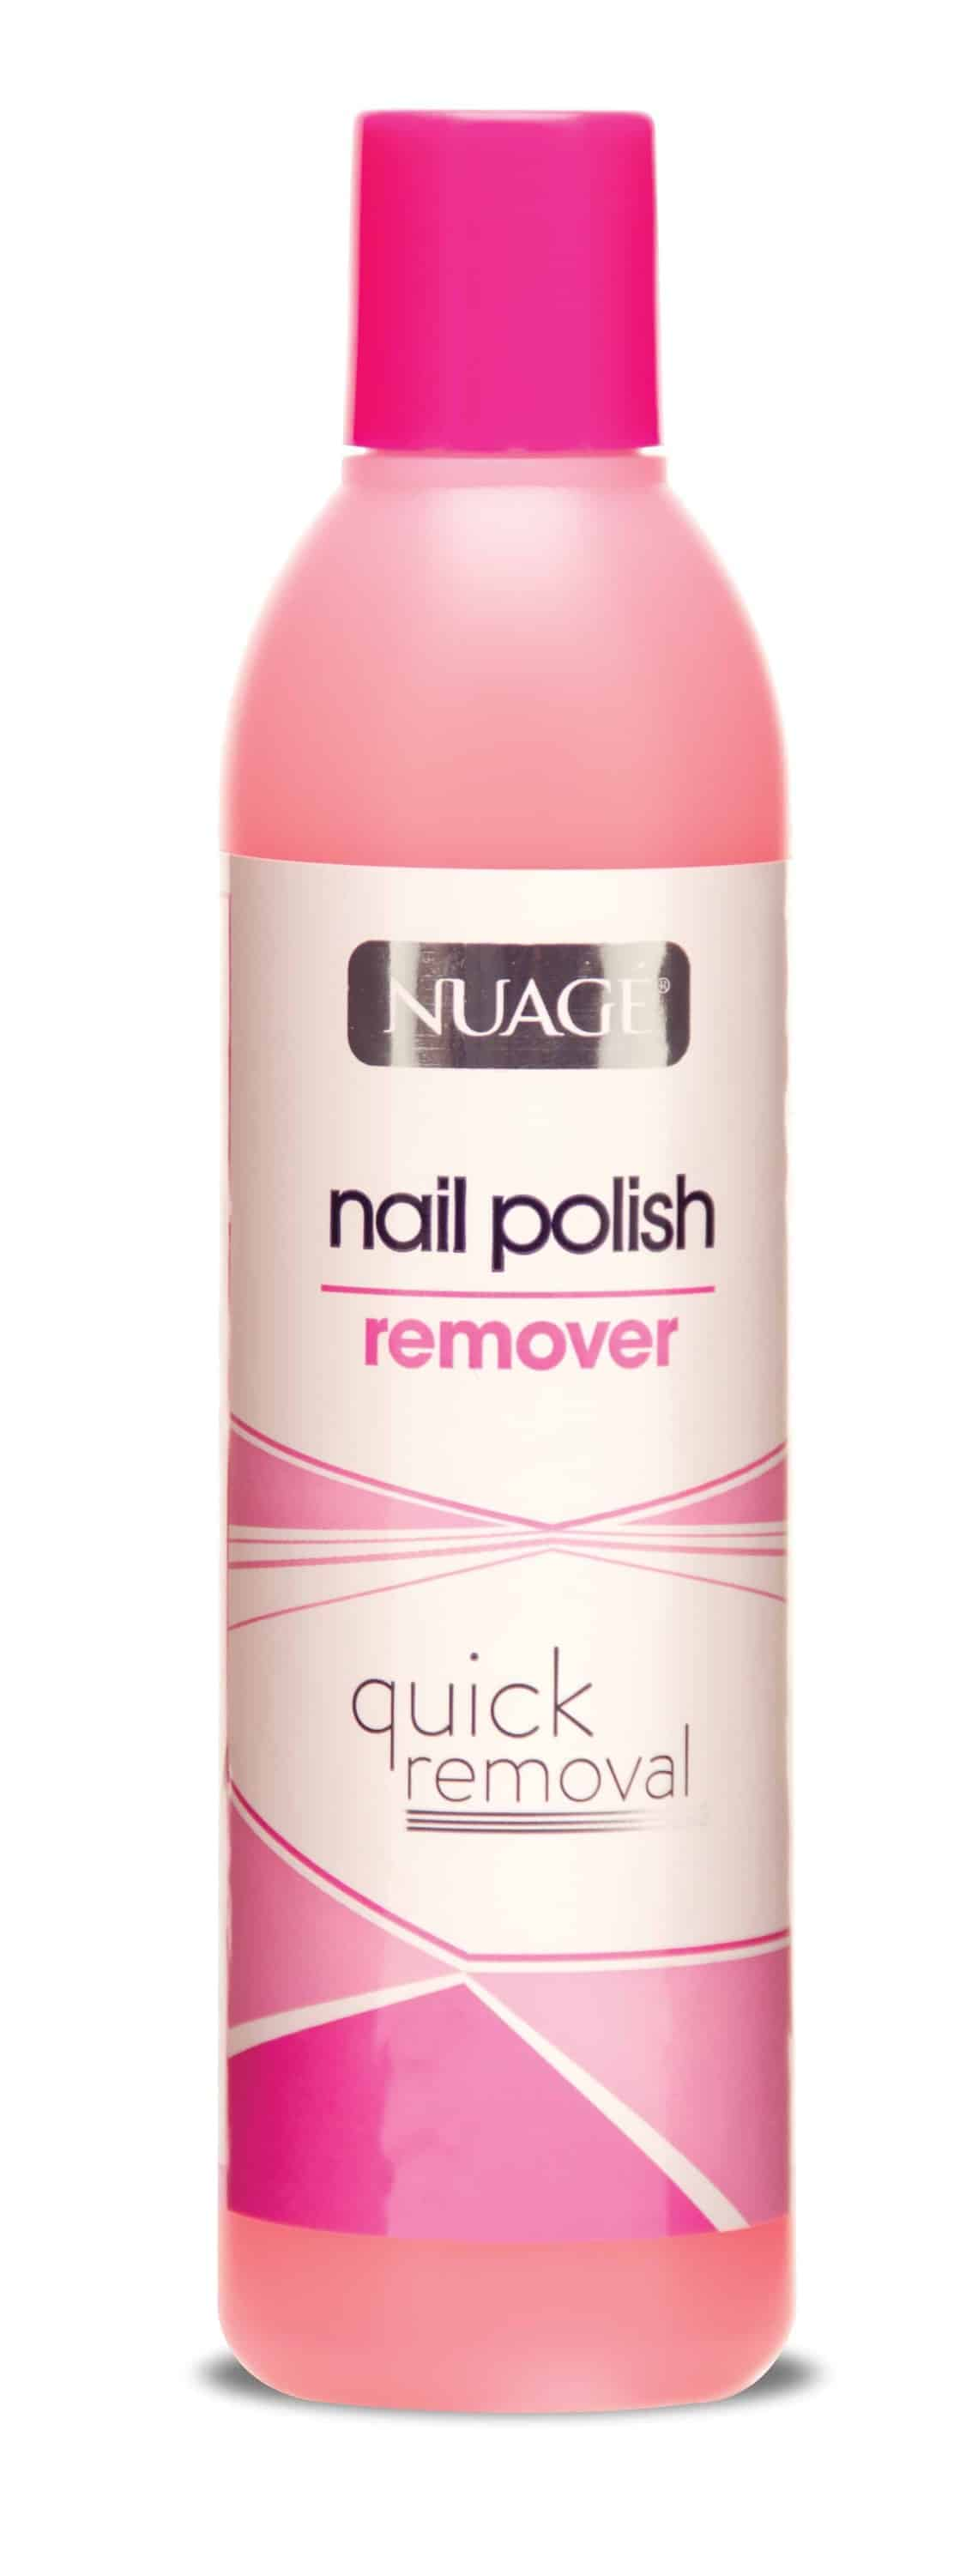 Nuage 250Ml Nail Polish Remover